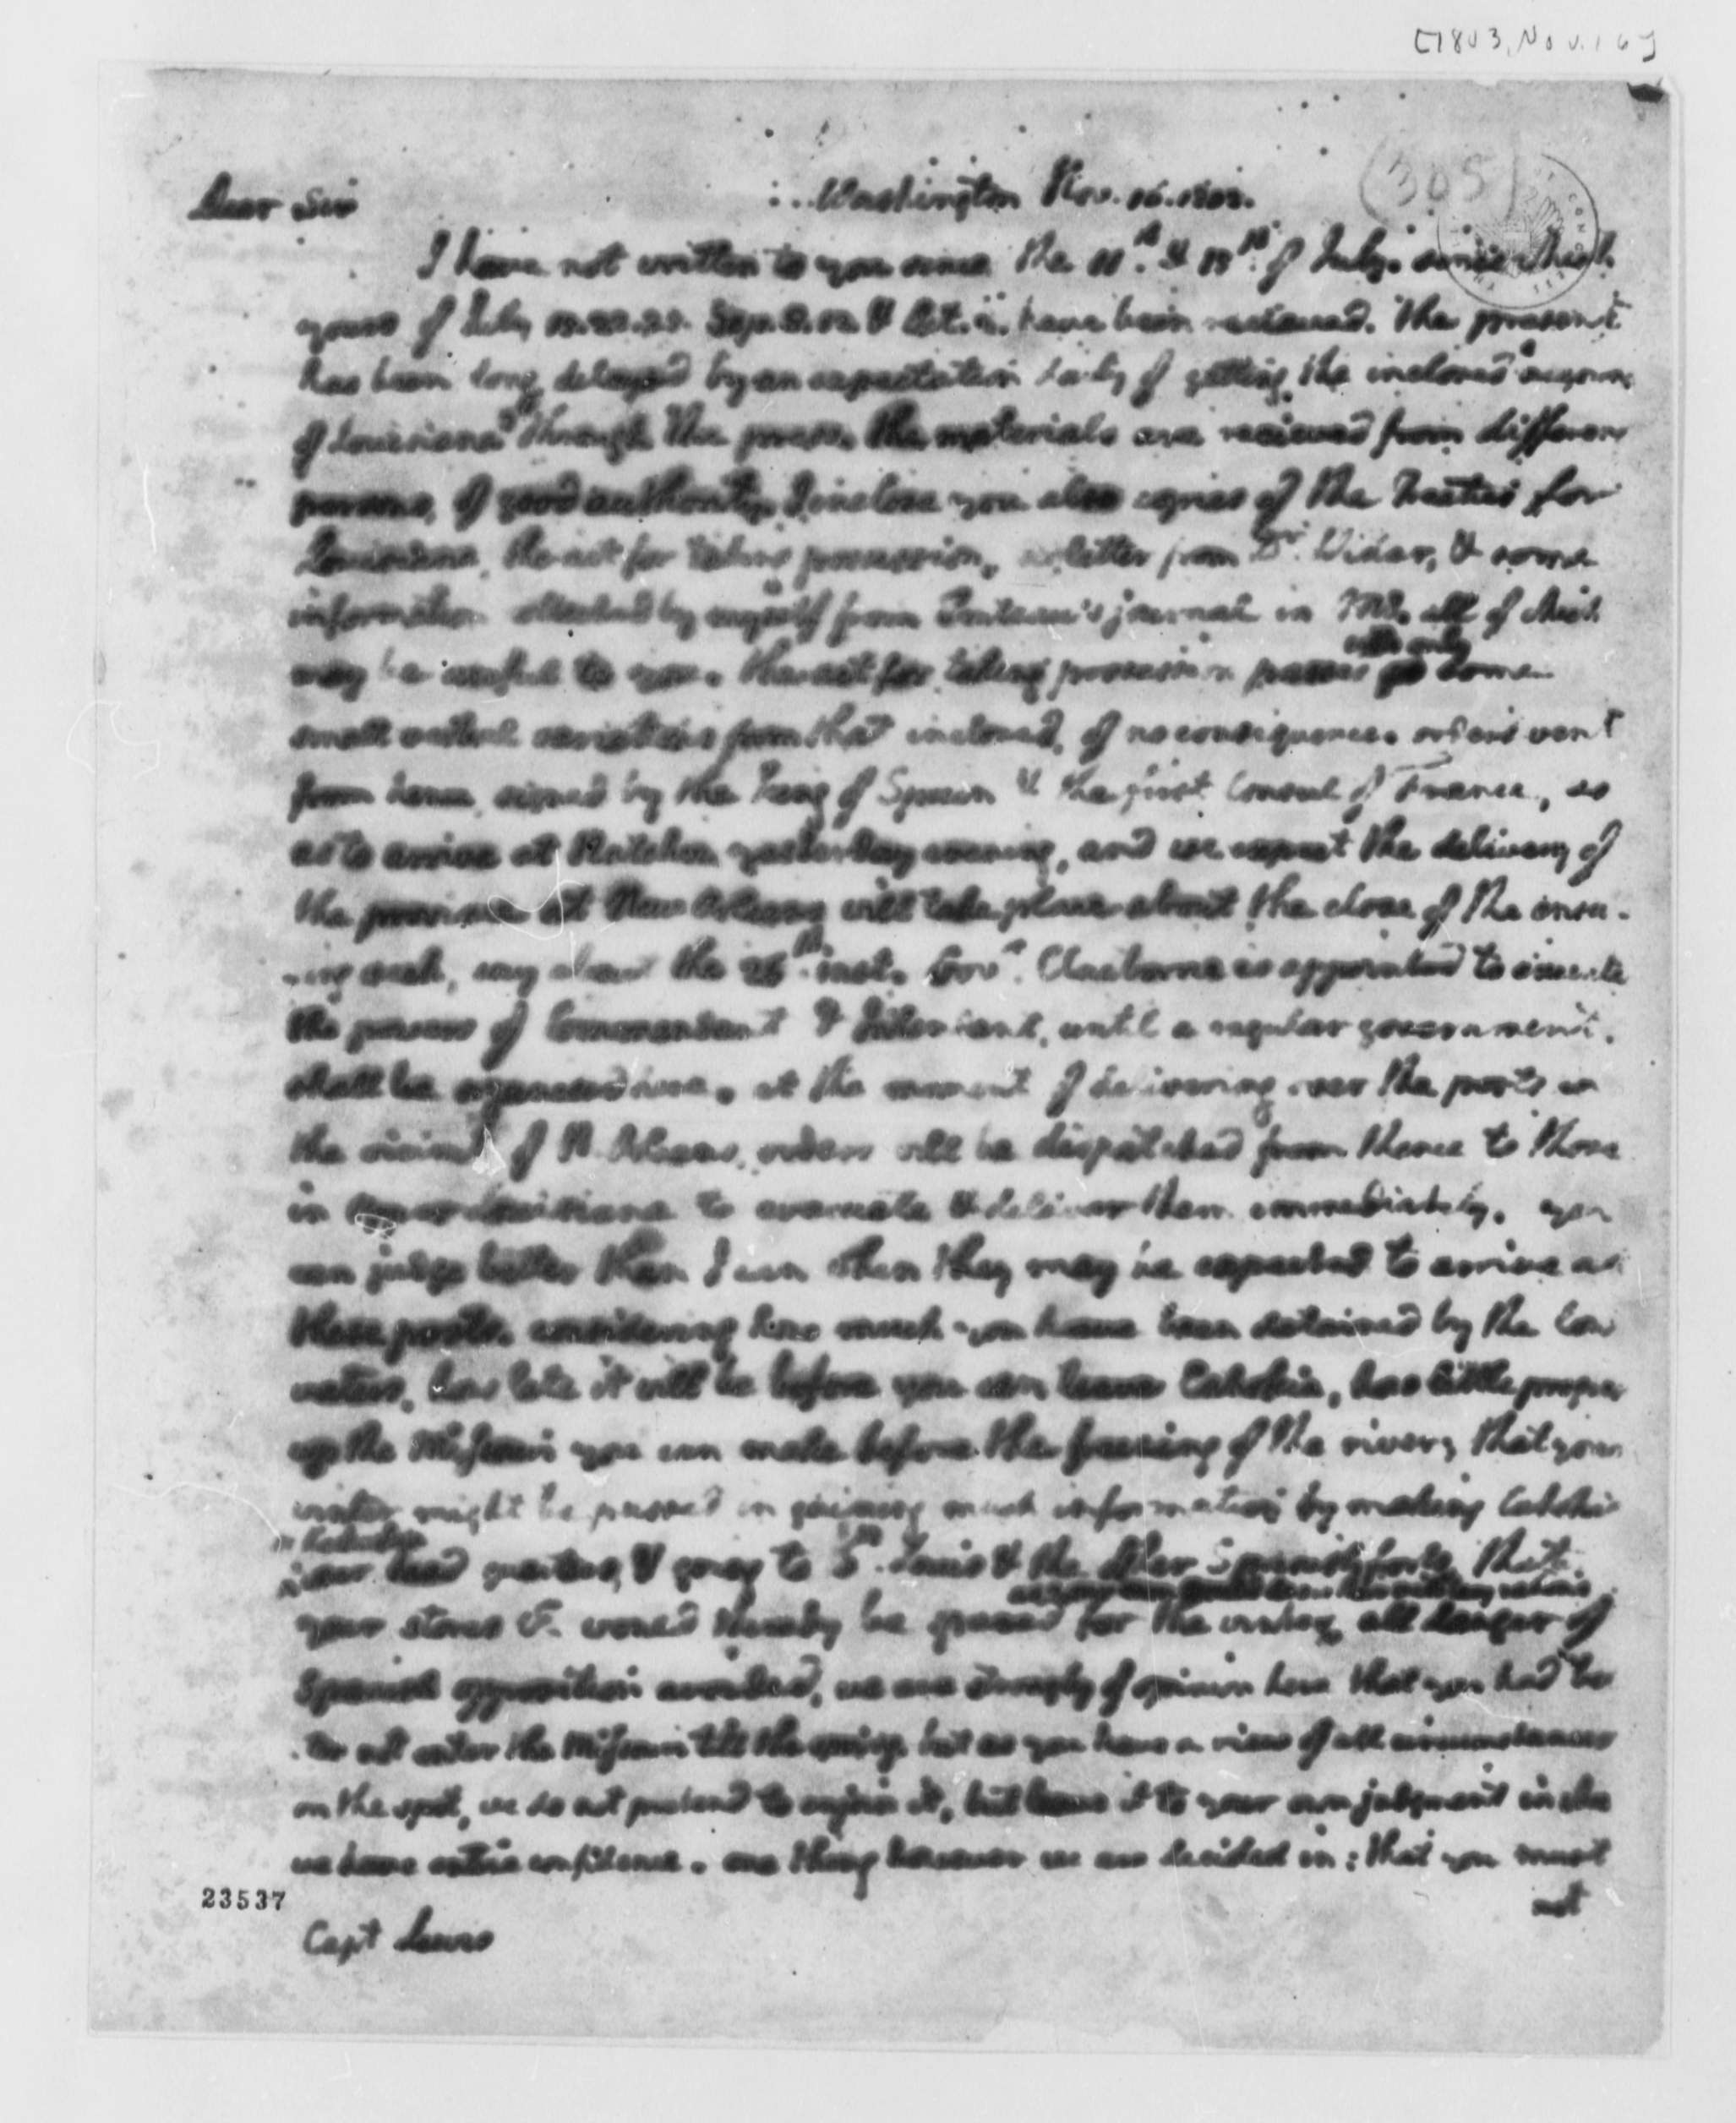 006 Essay Example Thomas Magnificent Jefferson On Education Questions Outline Full